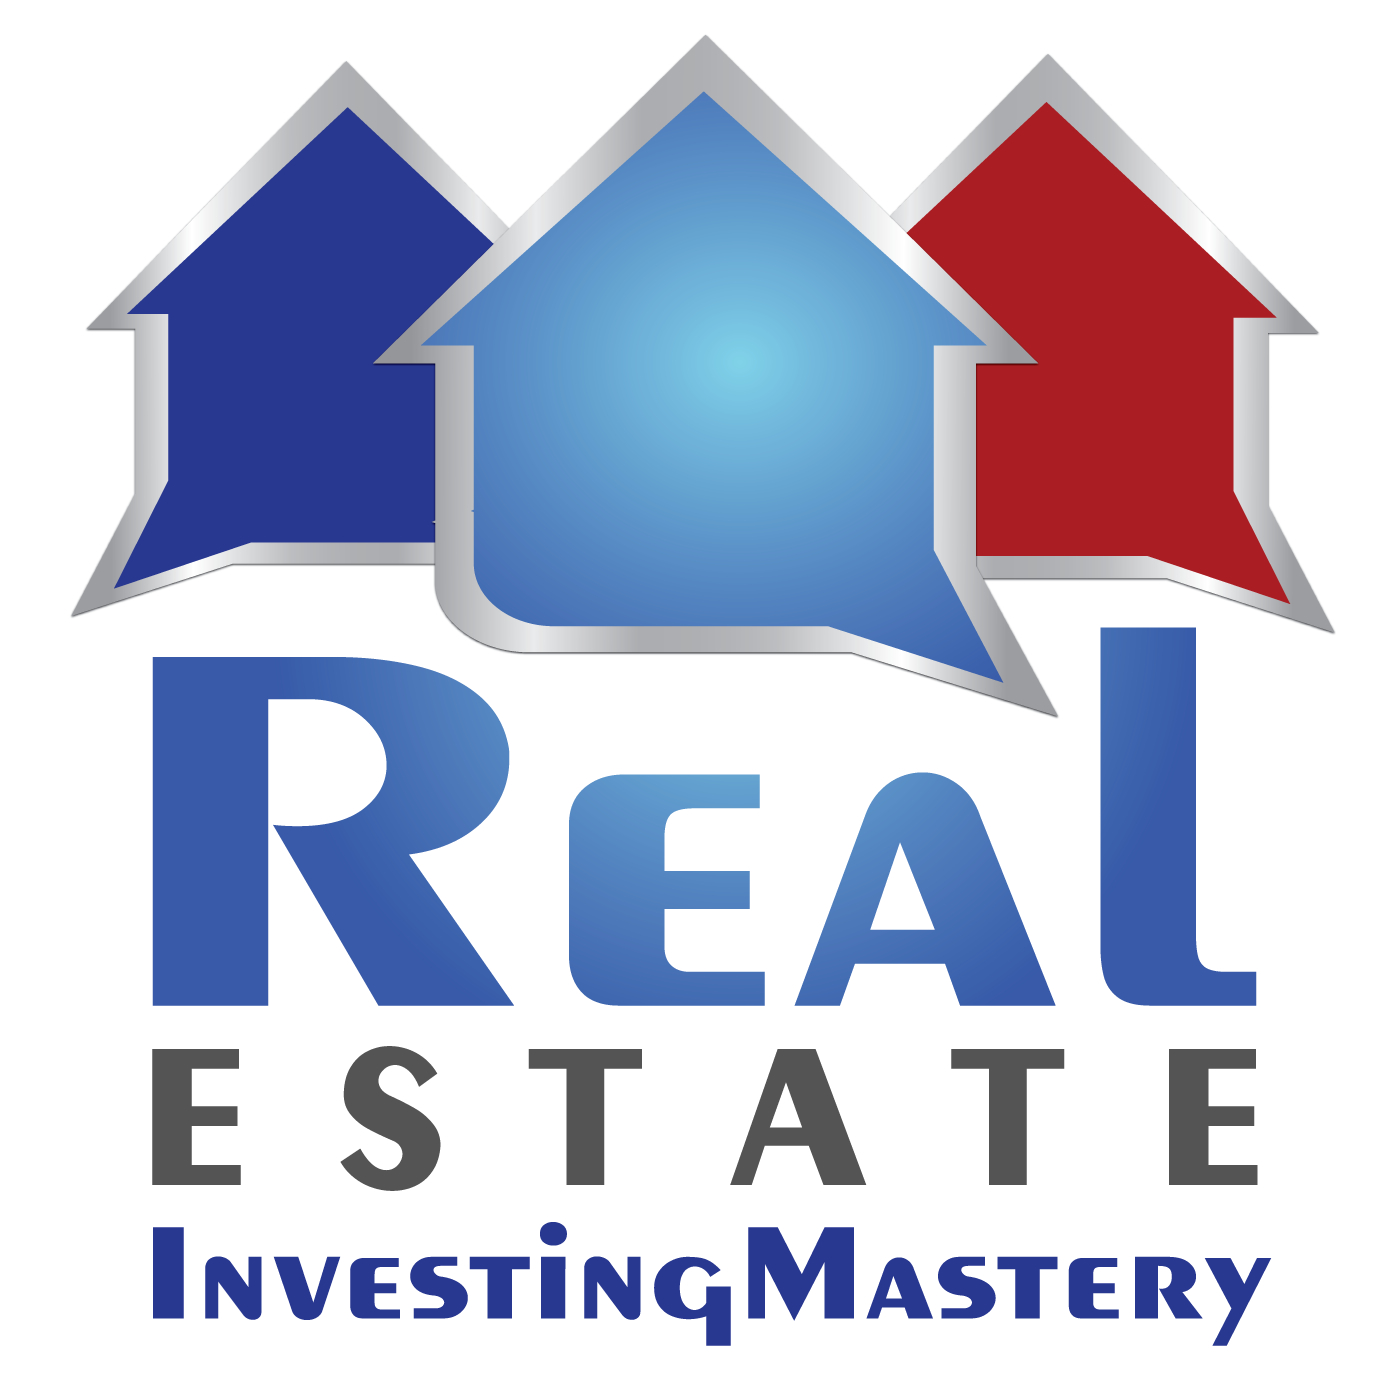 Real-Estate-Investing-Mastery-Podcast-3.jpeg